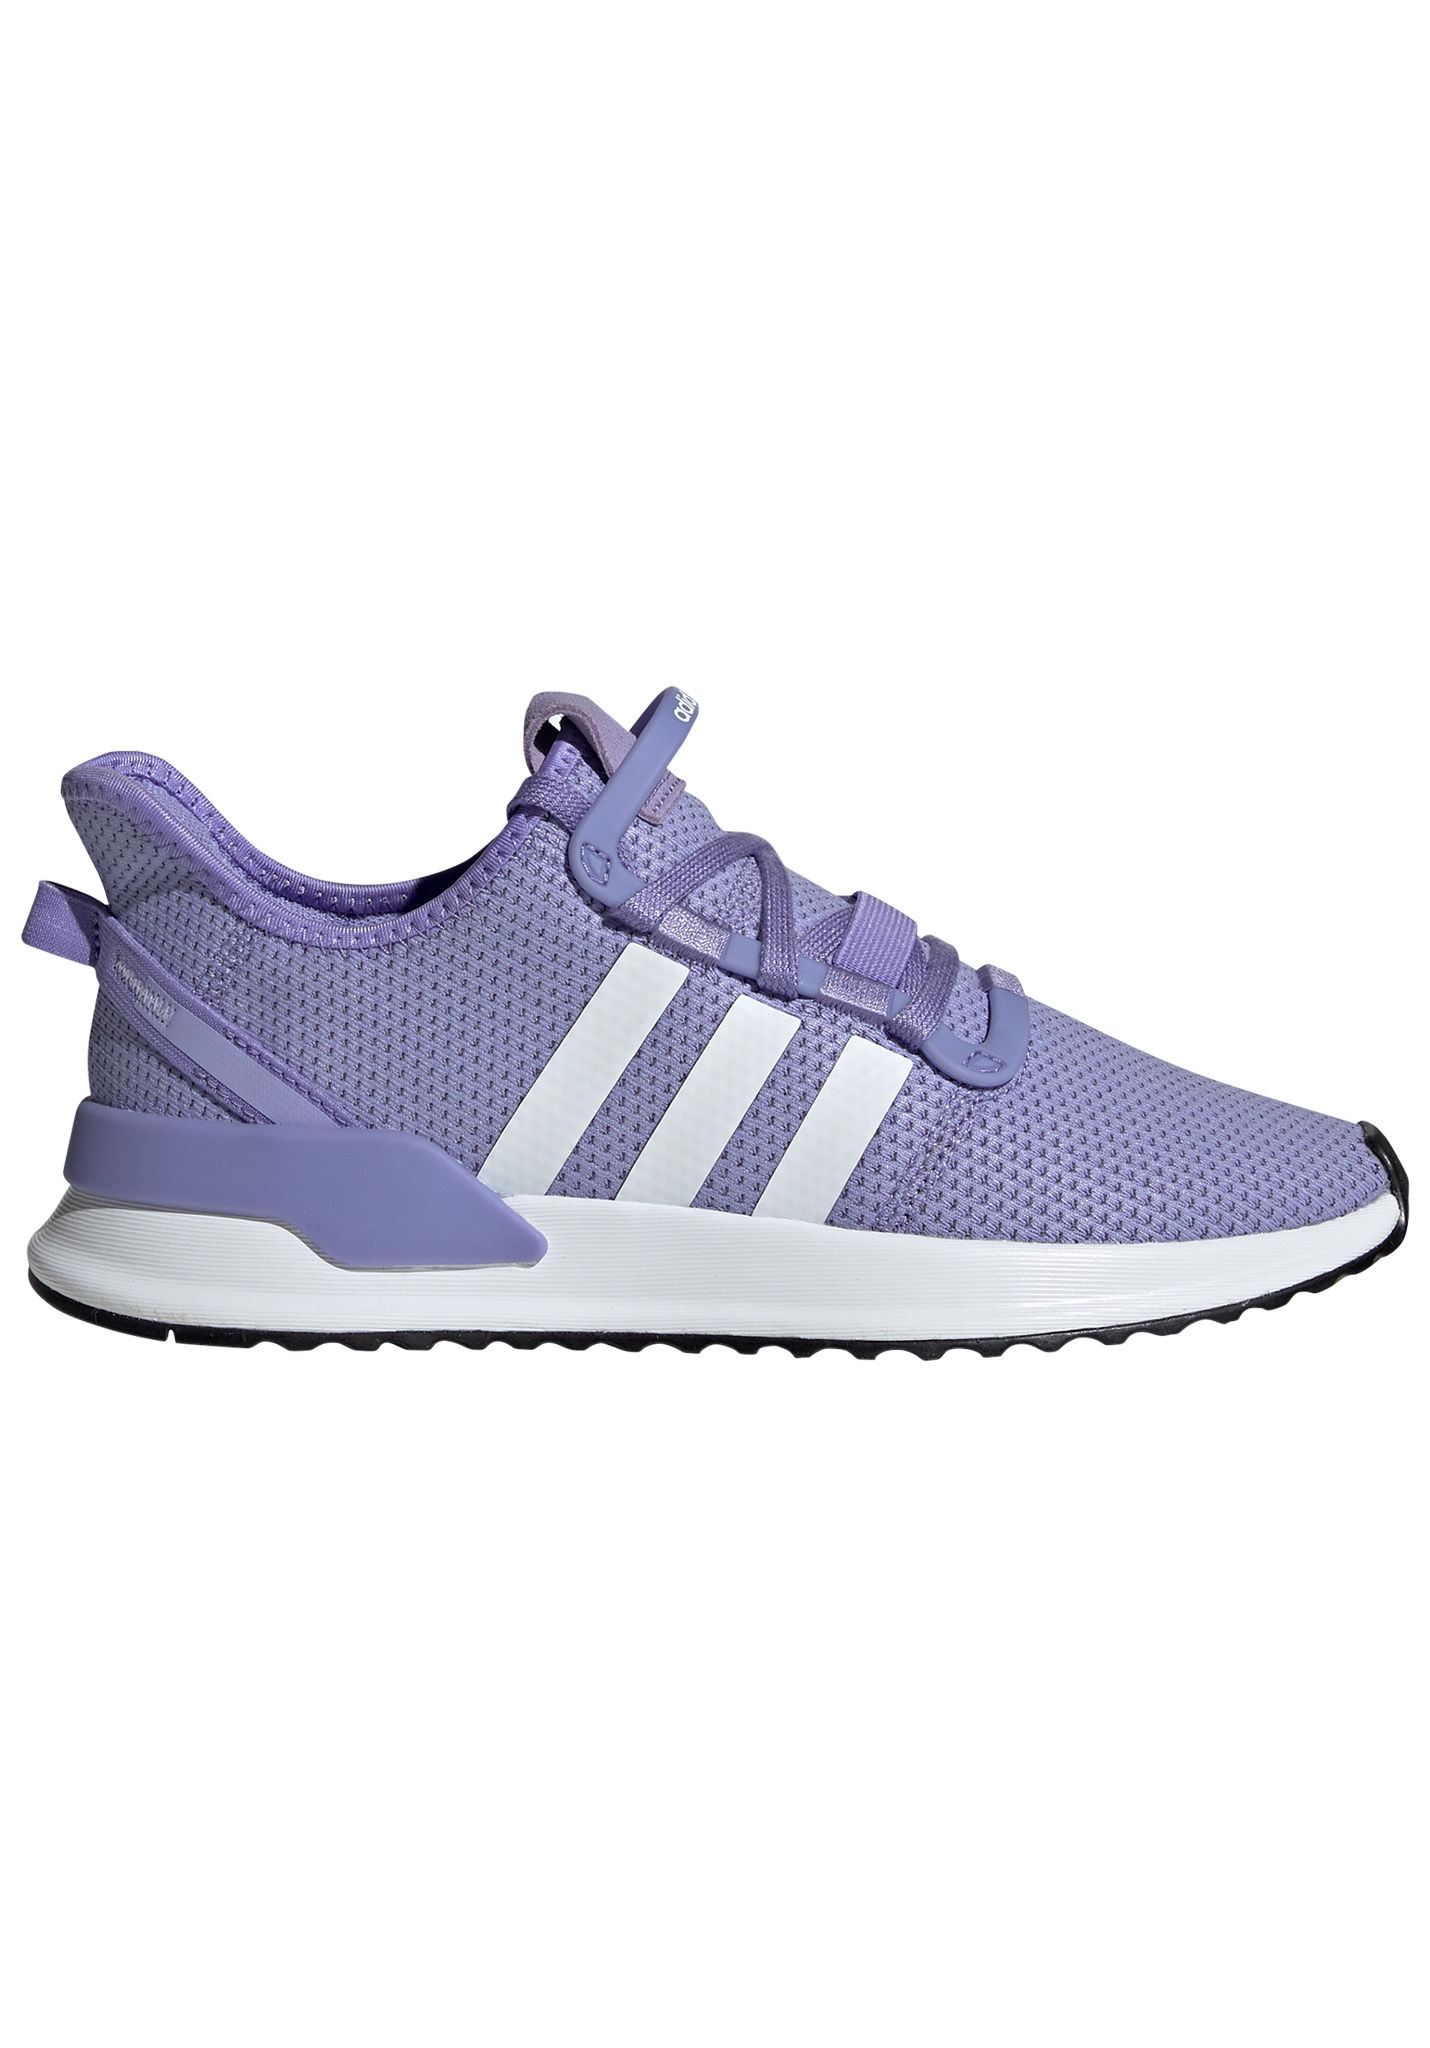 137f0d262aec9 ADIDAS ORIGINALS U Path Run - Sneakers for Women - Purple - Planet Sports